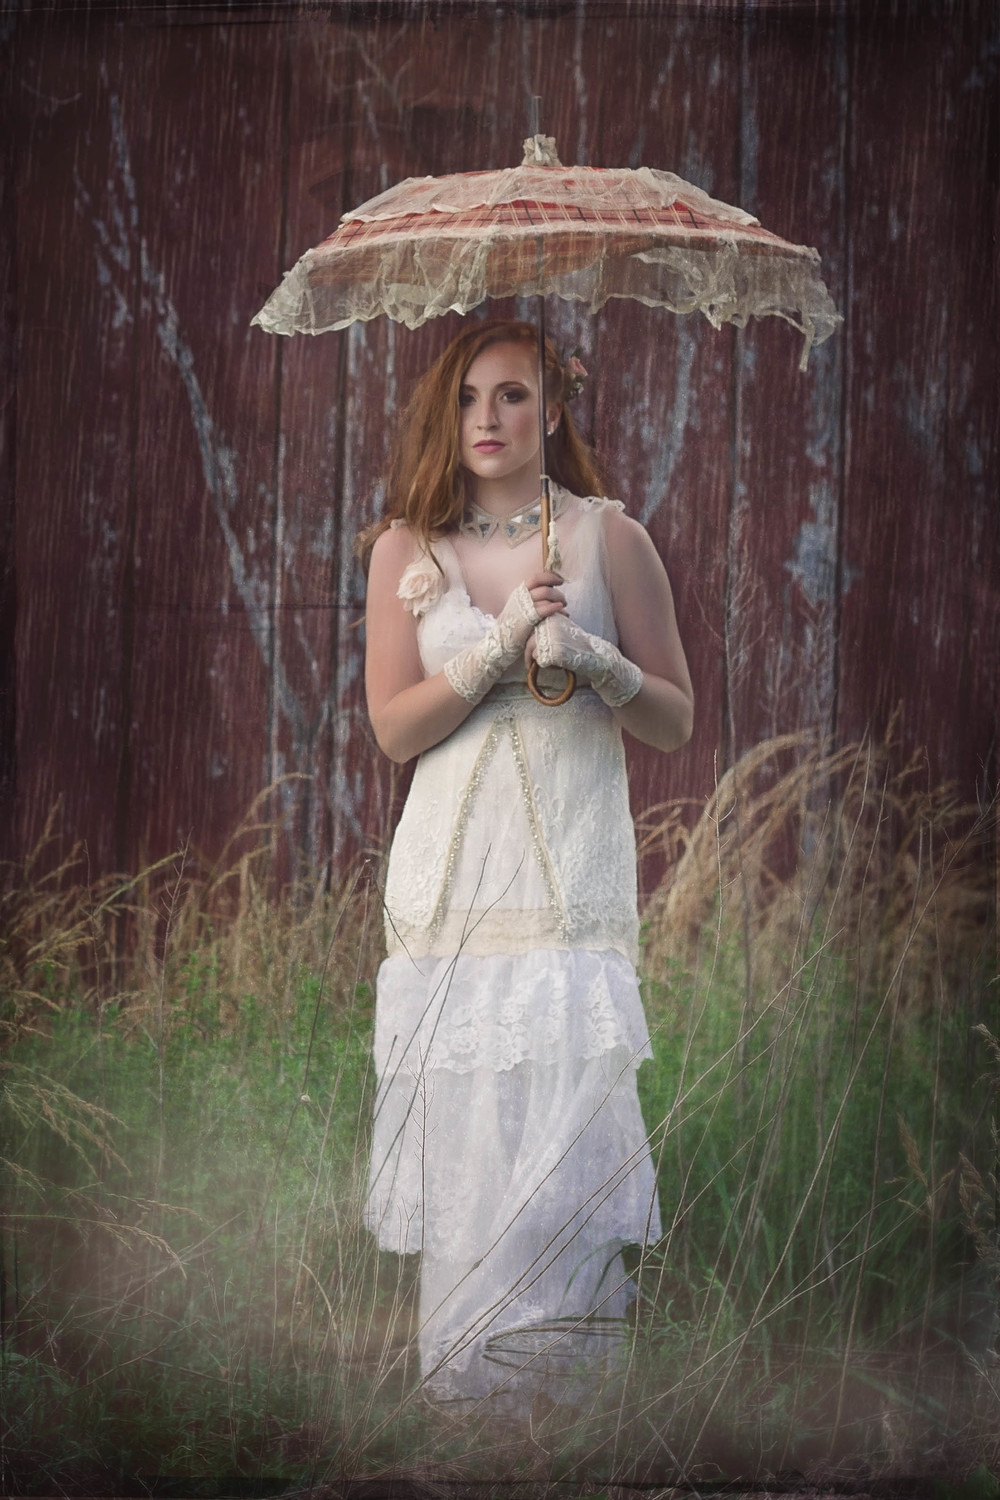 Vintage Wedding Gown and Parasol Maryland